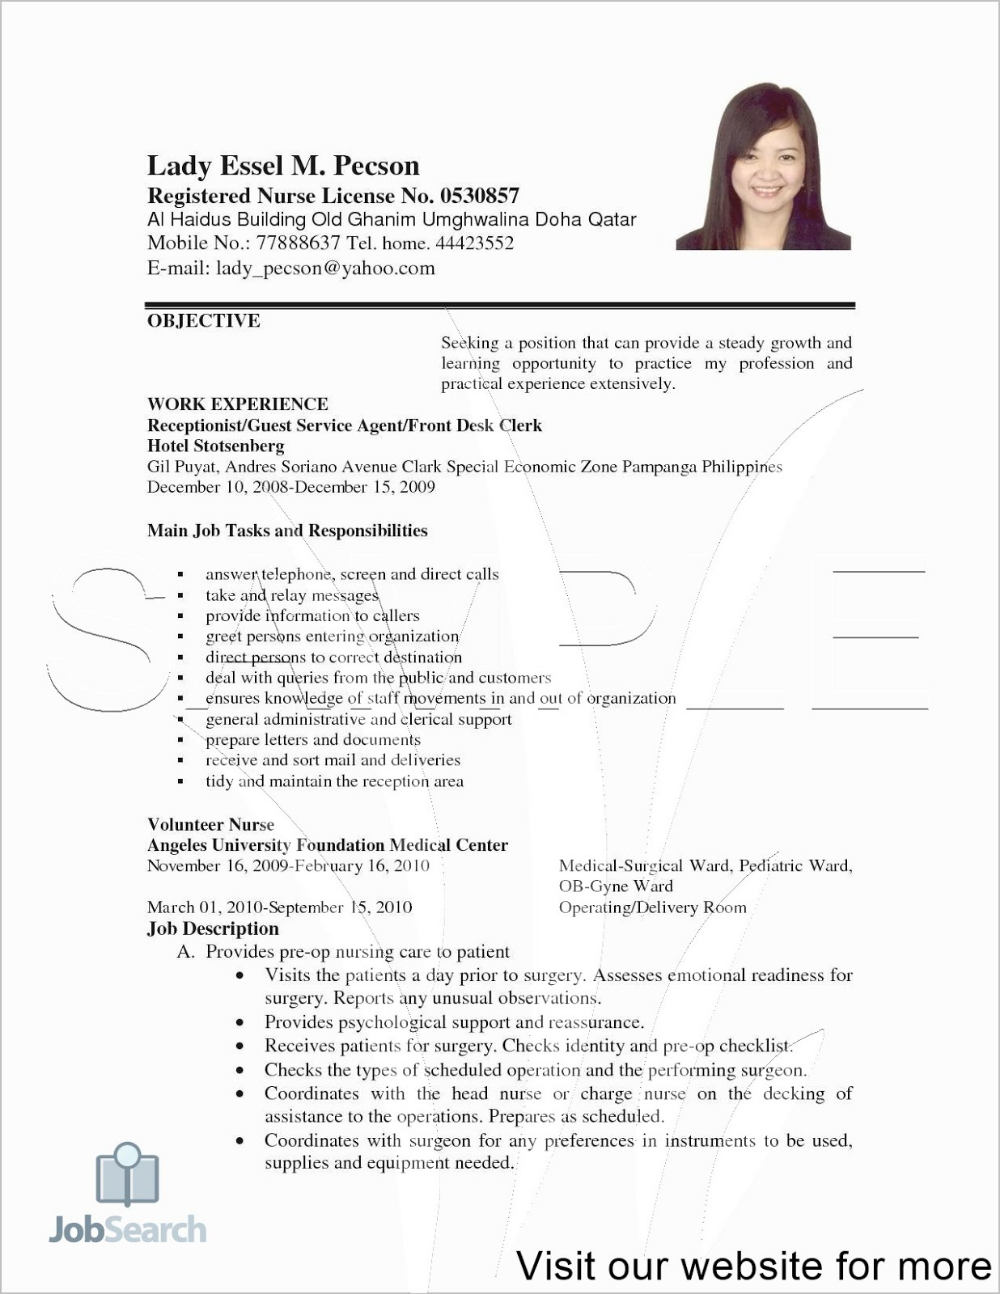 Job Resume Pdf Job Resume Pdf Download Job Resume Pdf File Job Resume Pdf For Freshers Job Resume Pdf Resume Template Free Job Resume Template Resume Template